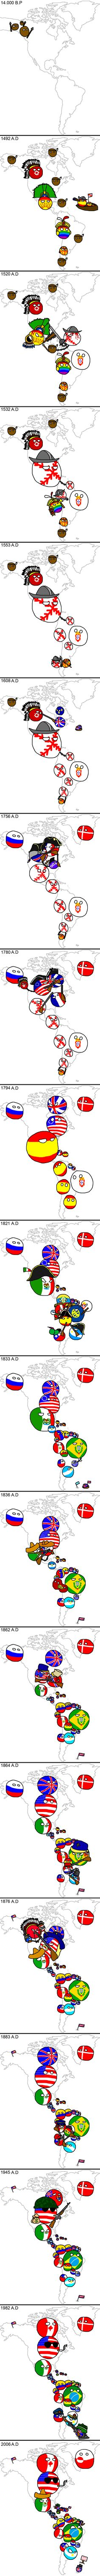 History of the Americas